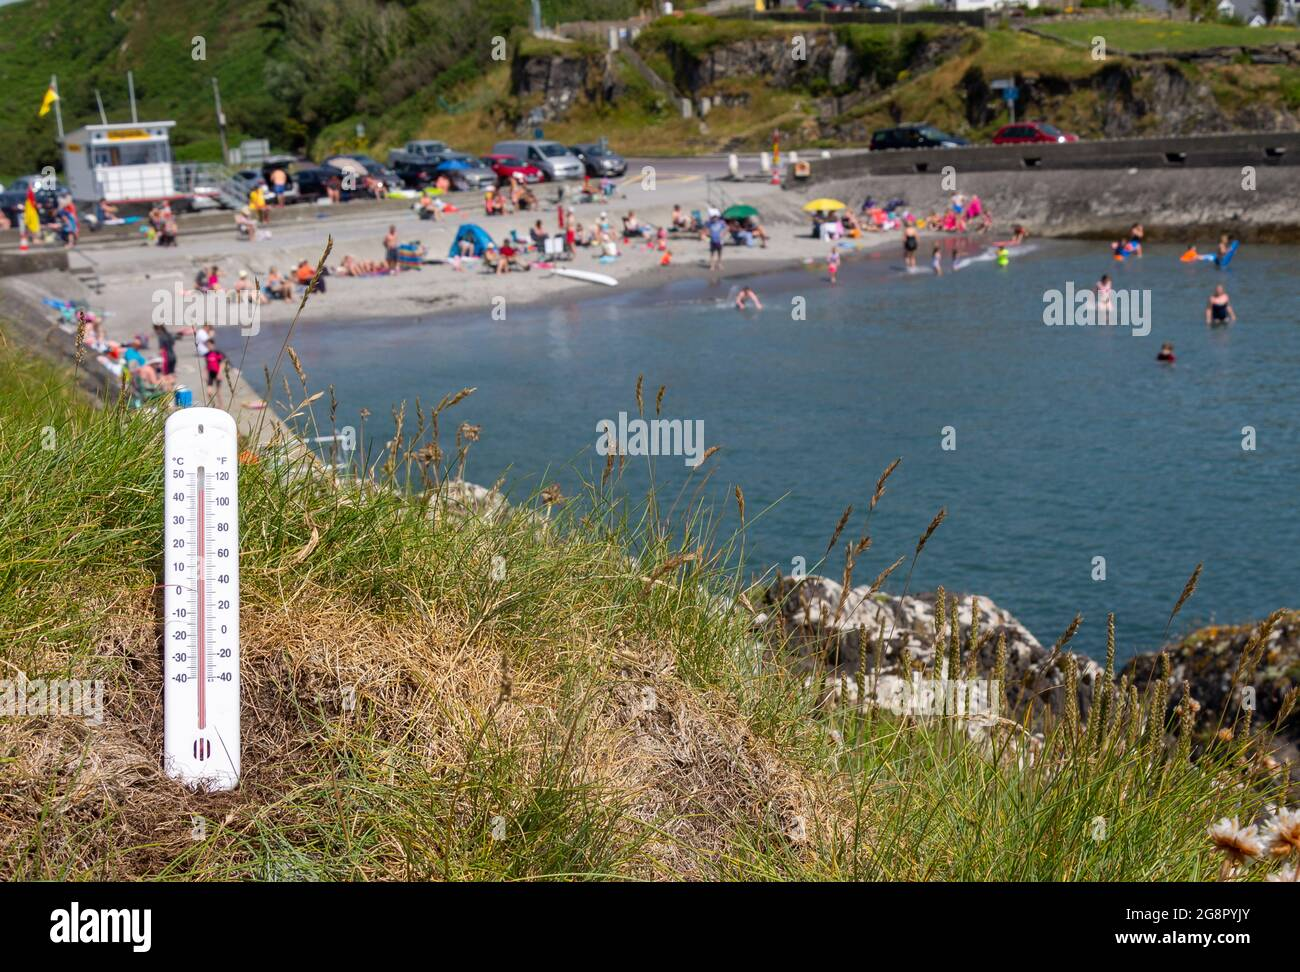 crowded-beach-with-thermometer-in-foreground-showing-very-hot-day-2G8PYJY.jpg